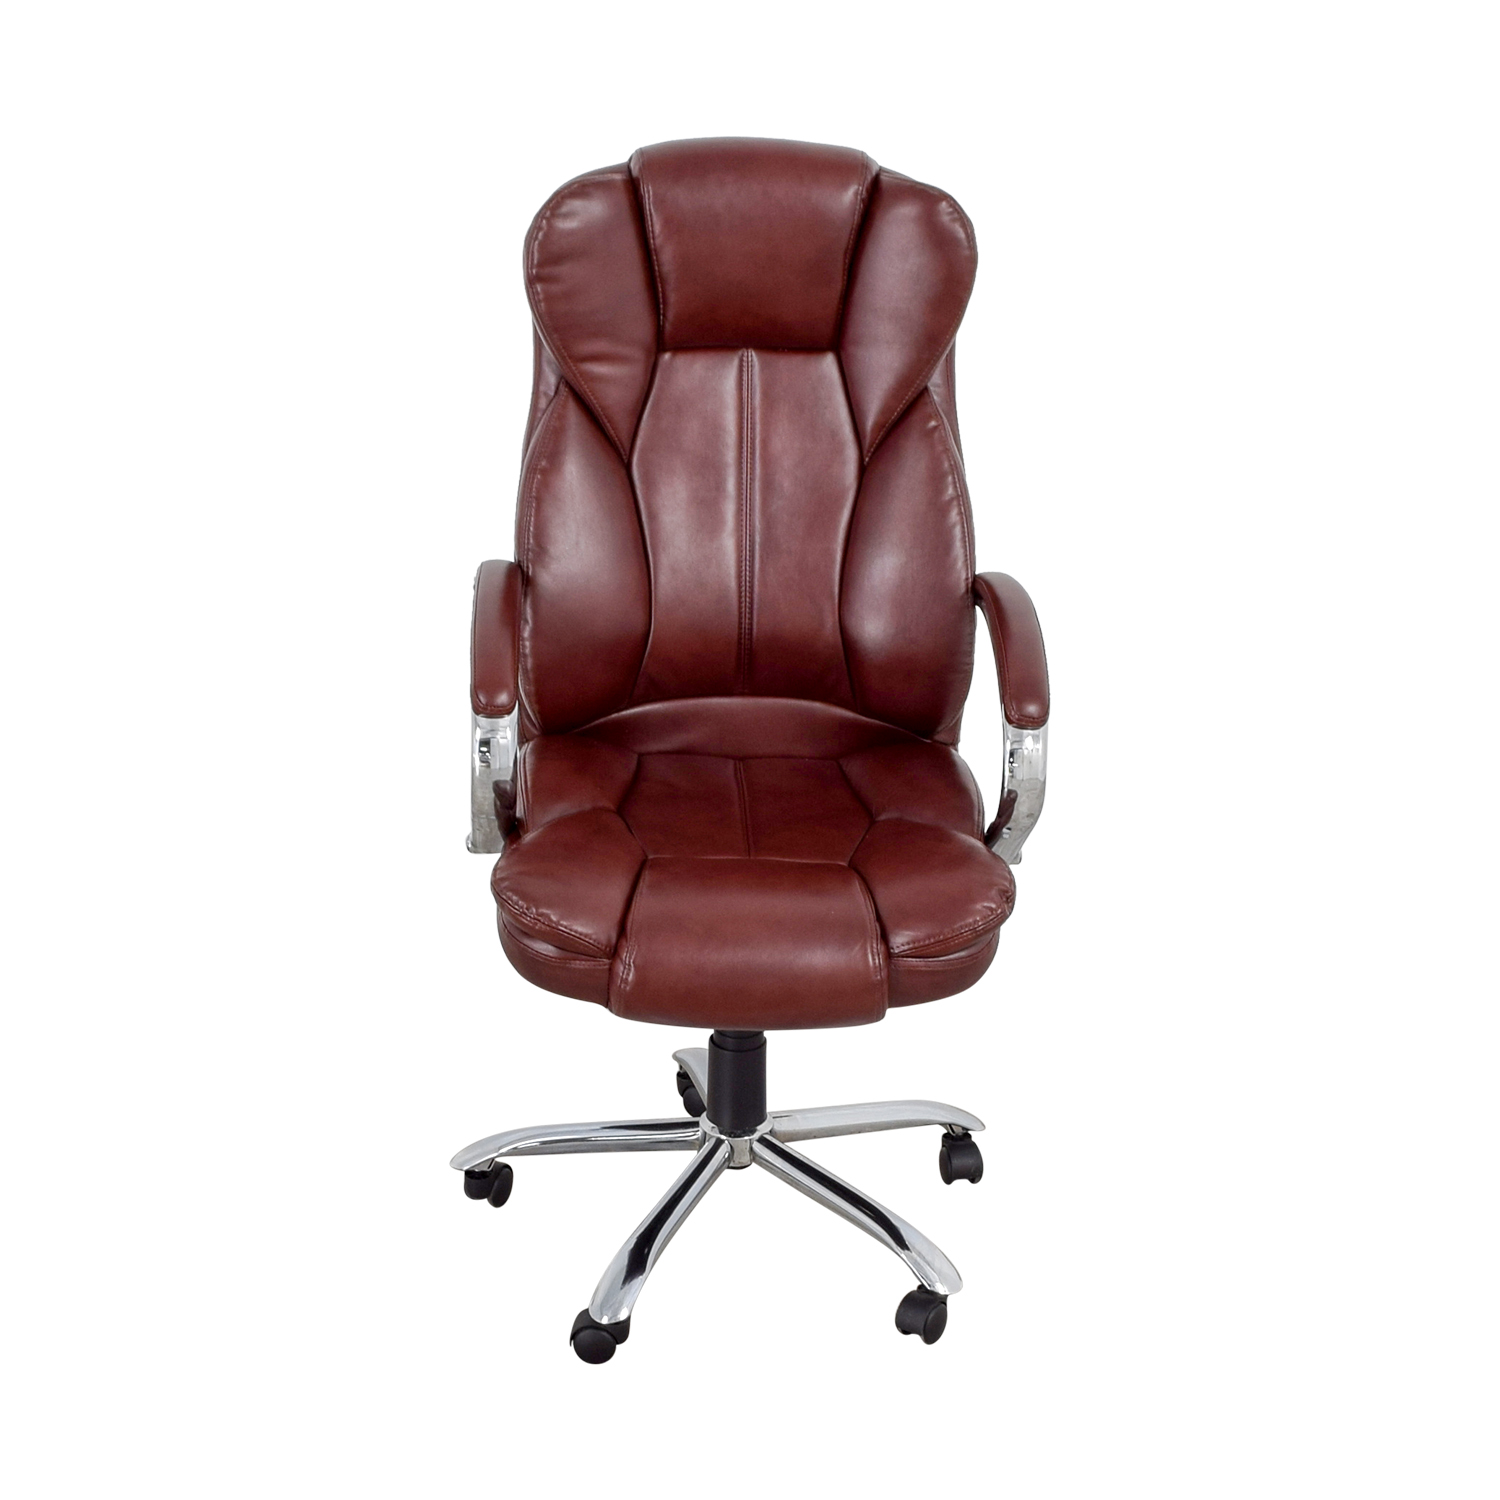 Burgundy Office Chair 45 Off Best Office Best Office Burgundy Office Chair